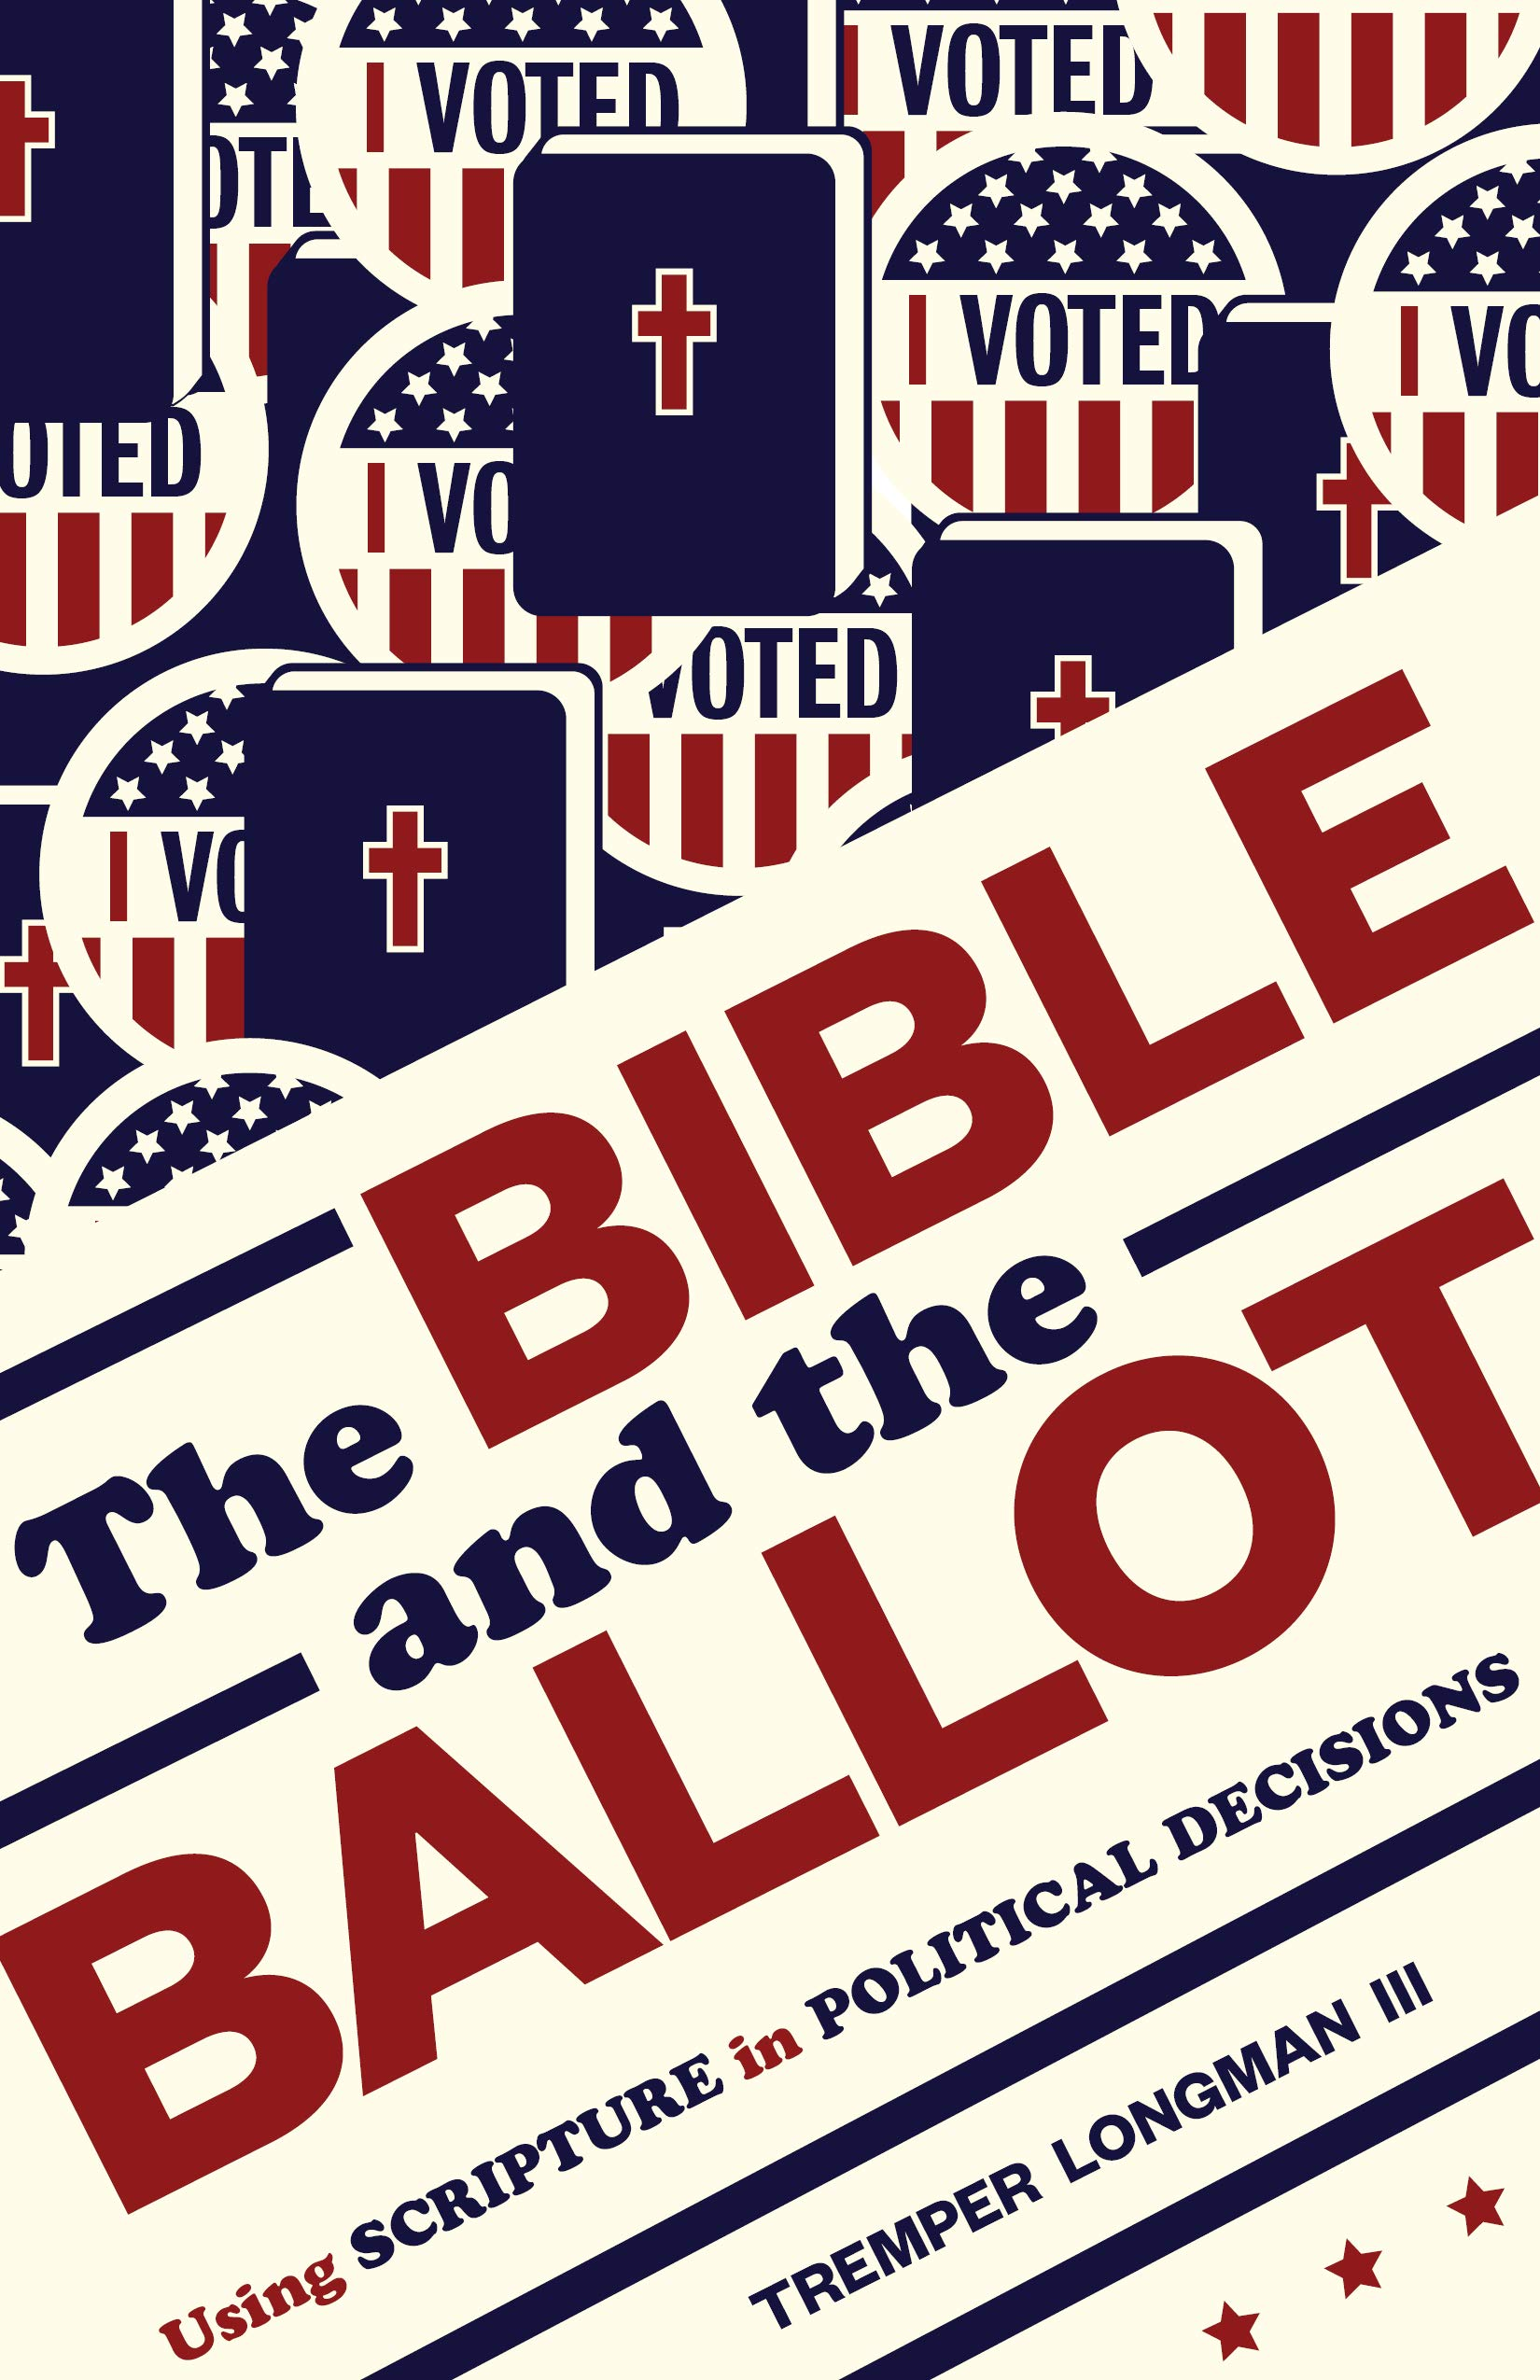 Book Review: 'The Bible and the Ballot: Using Scripture in Political Decisions' by Tremper Longman III